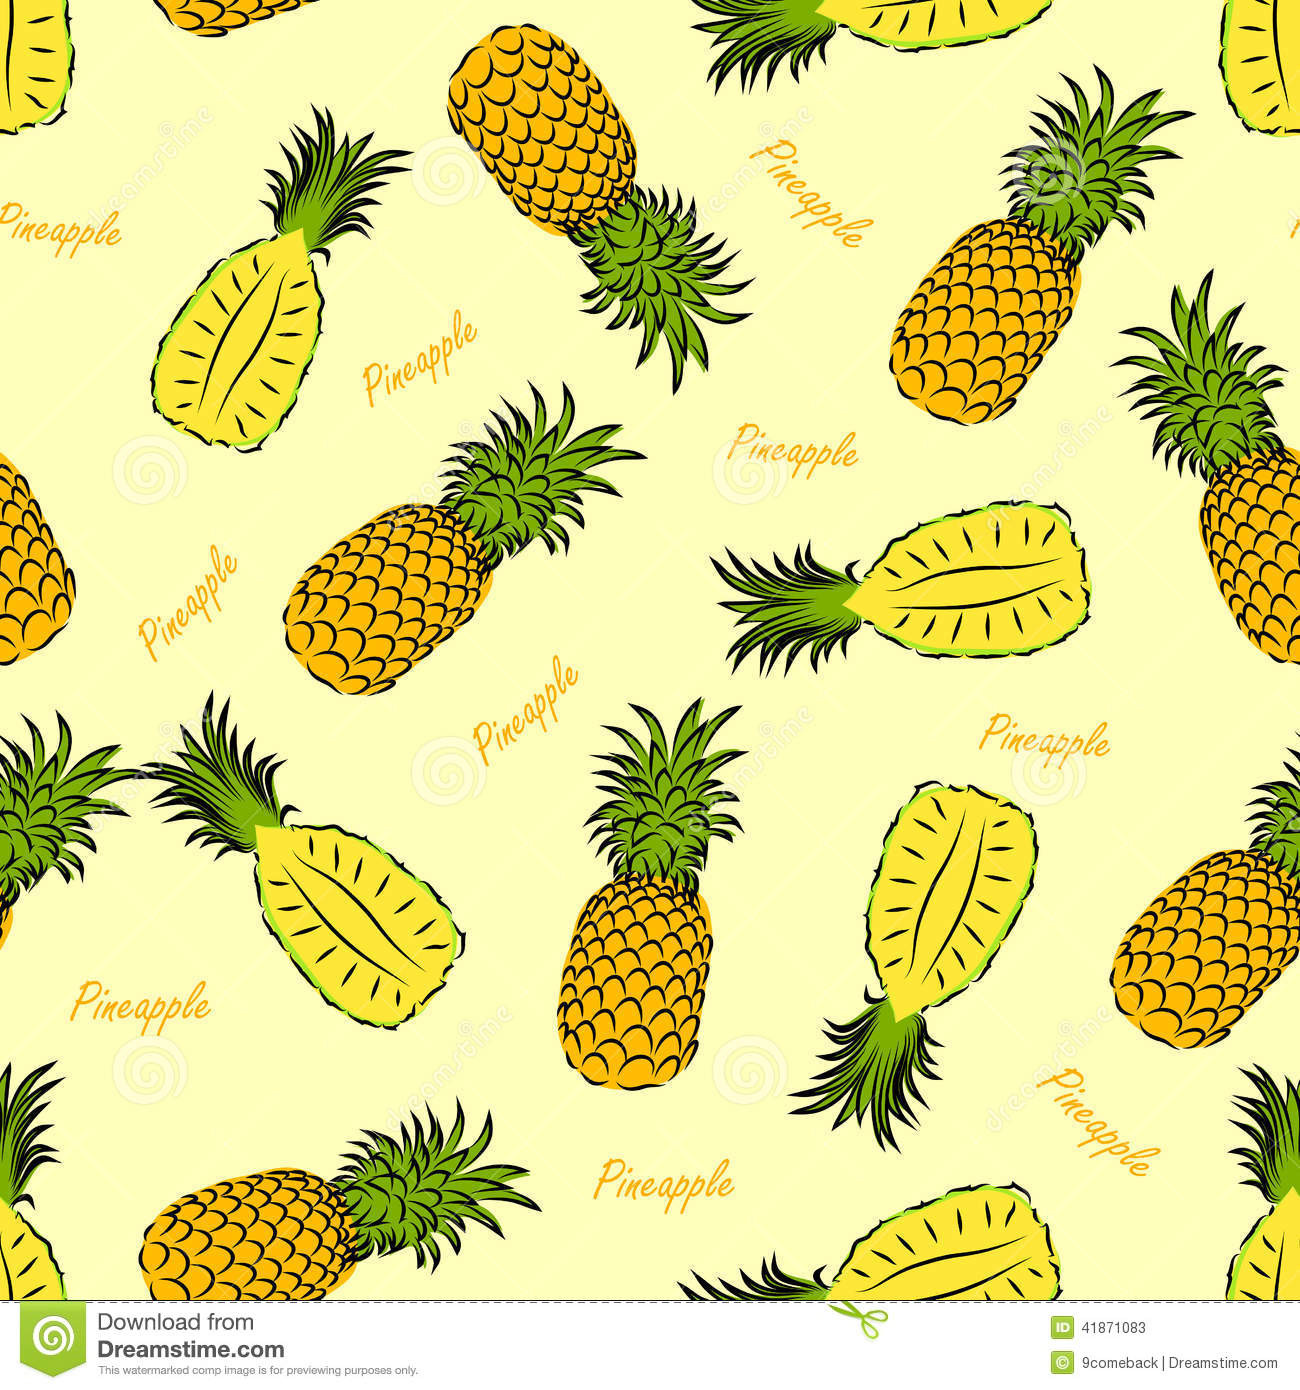 Pineapple Pattern Lovely Pineapple Seamless Stock Vector Image Of Amazing 47 Images Pineapple Pattern